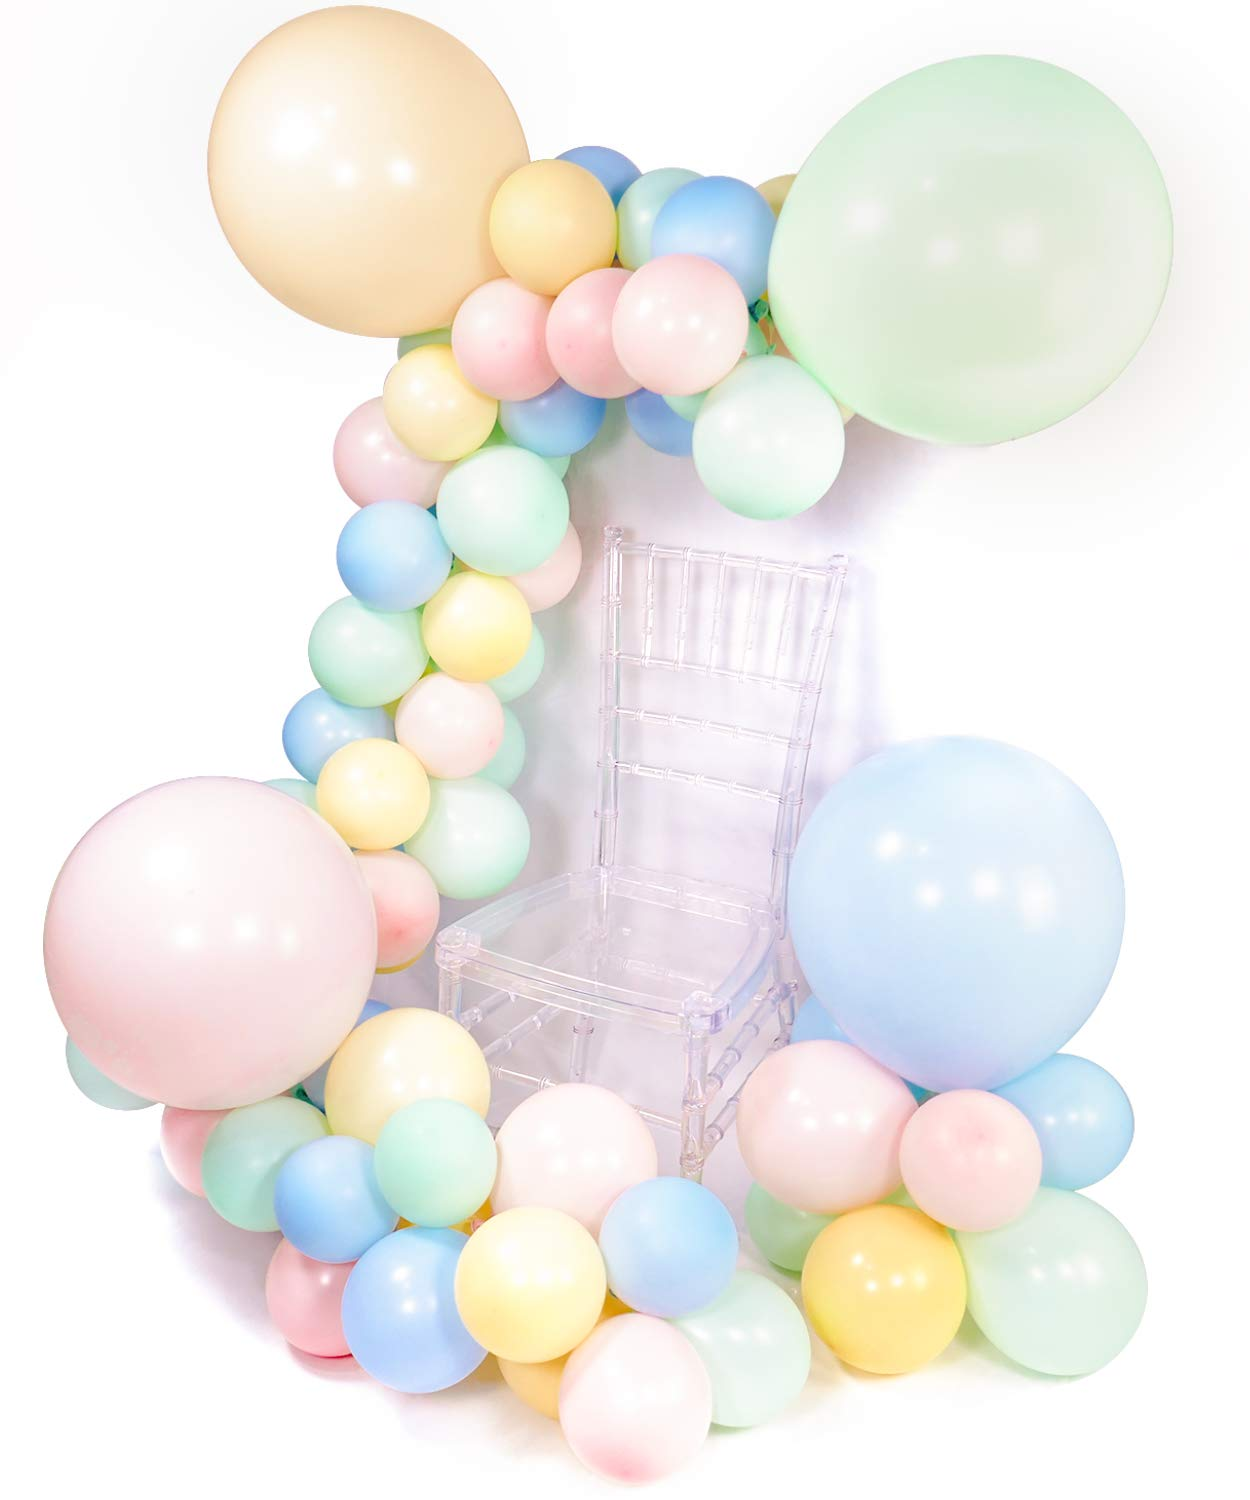 METABLE 100pcs Pastel Yellow Pale Pink Light Blue Mint Balloons, Decorations for Birthday, Baby Shower